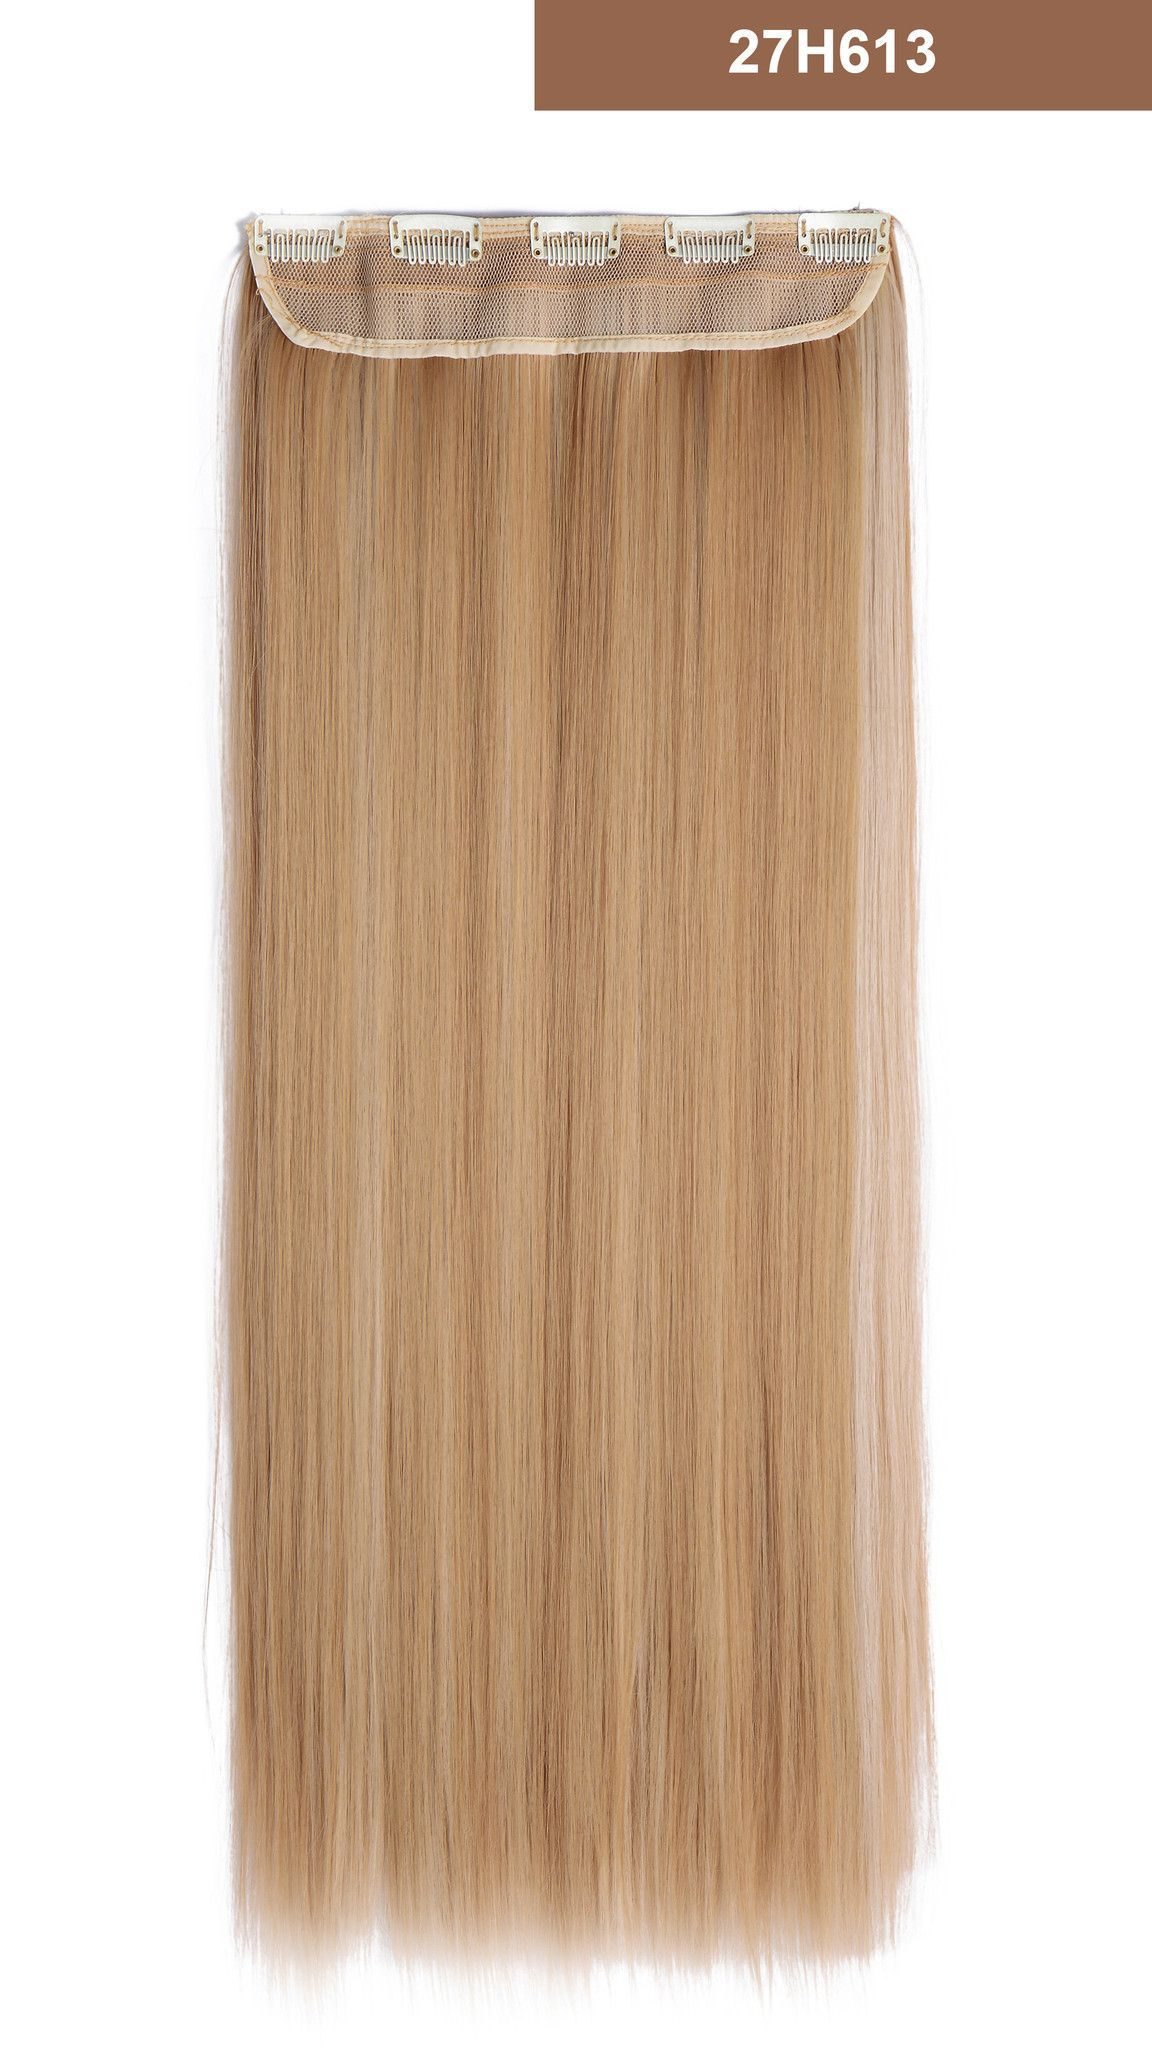 24 Straight 34 Full Head Synthetic Hair Extensions Clip On